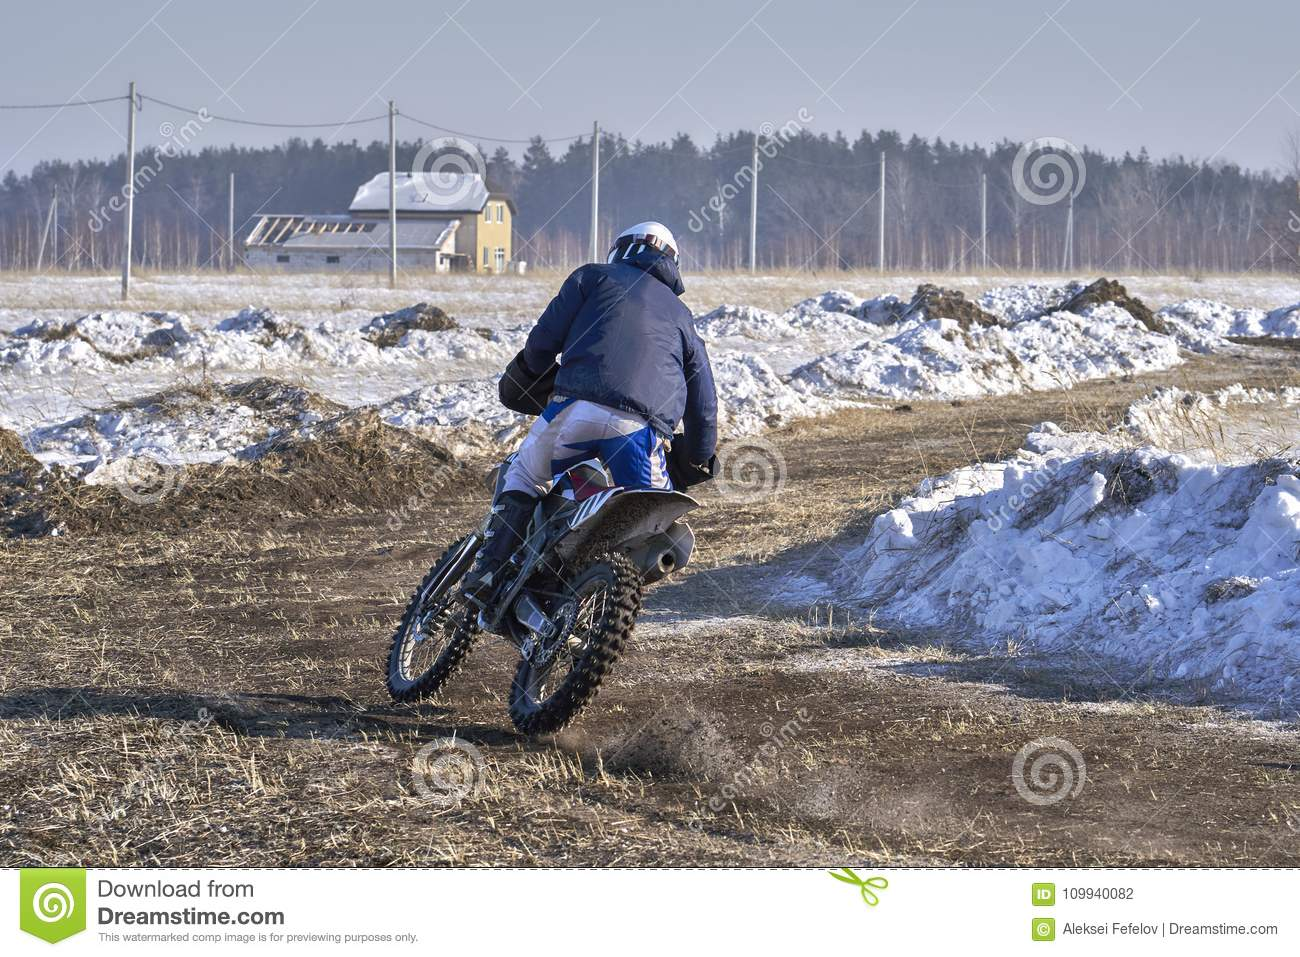 Sportsman racer man fulfills a fast ride on a motorcycle on the road extreme. The race track is very uneven